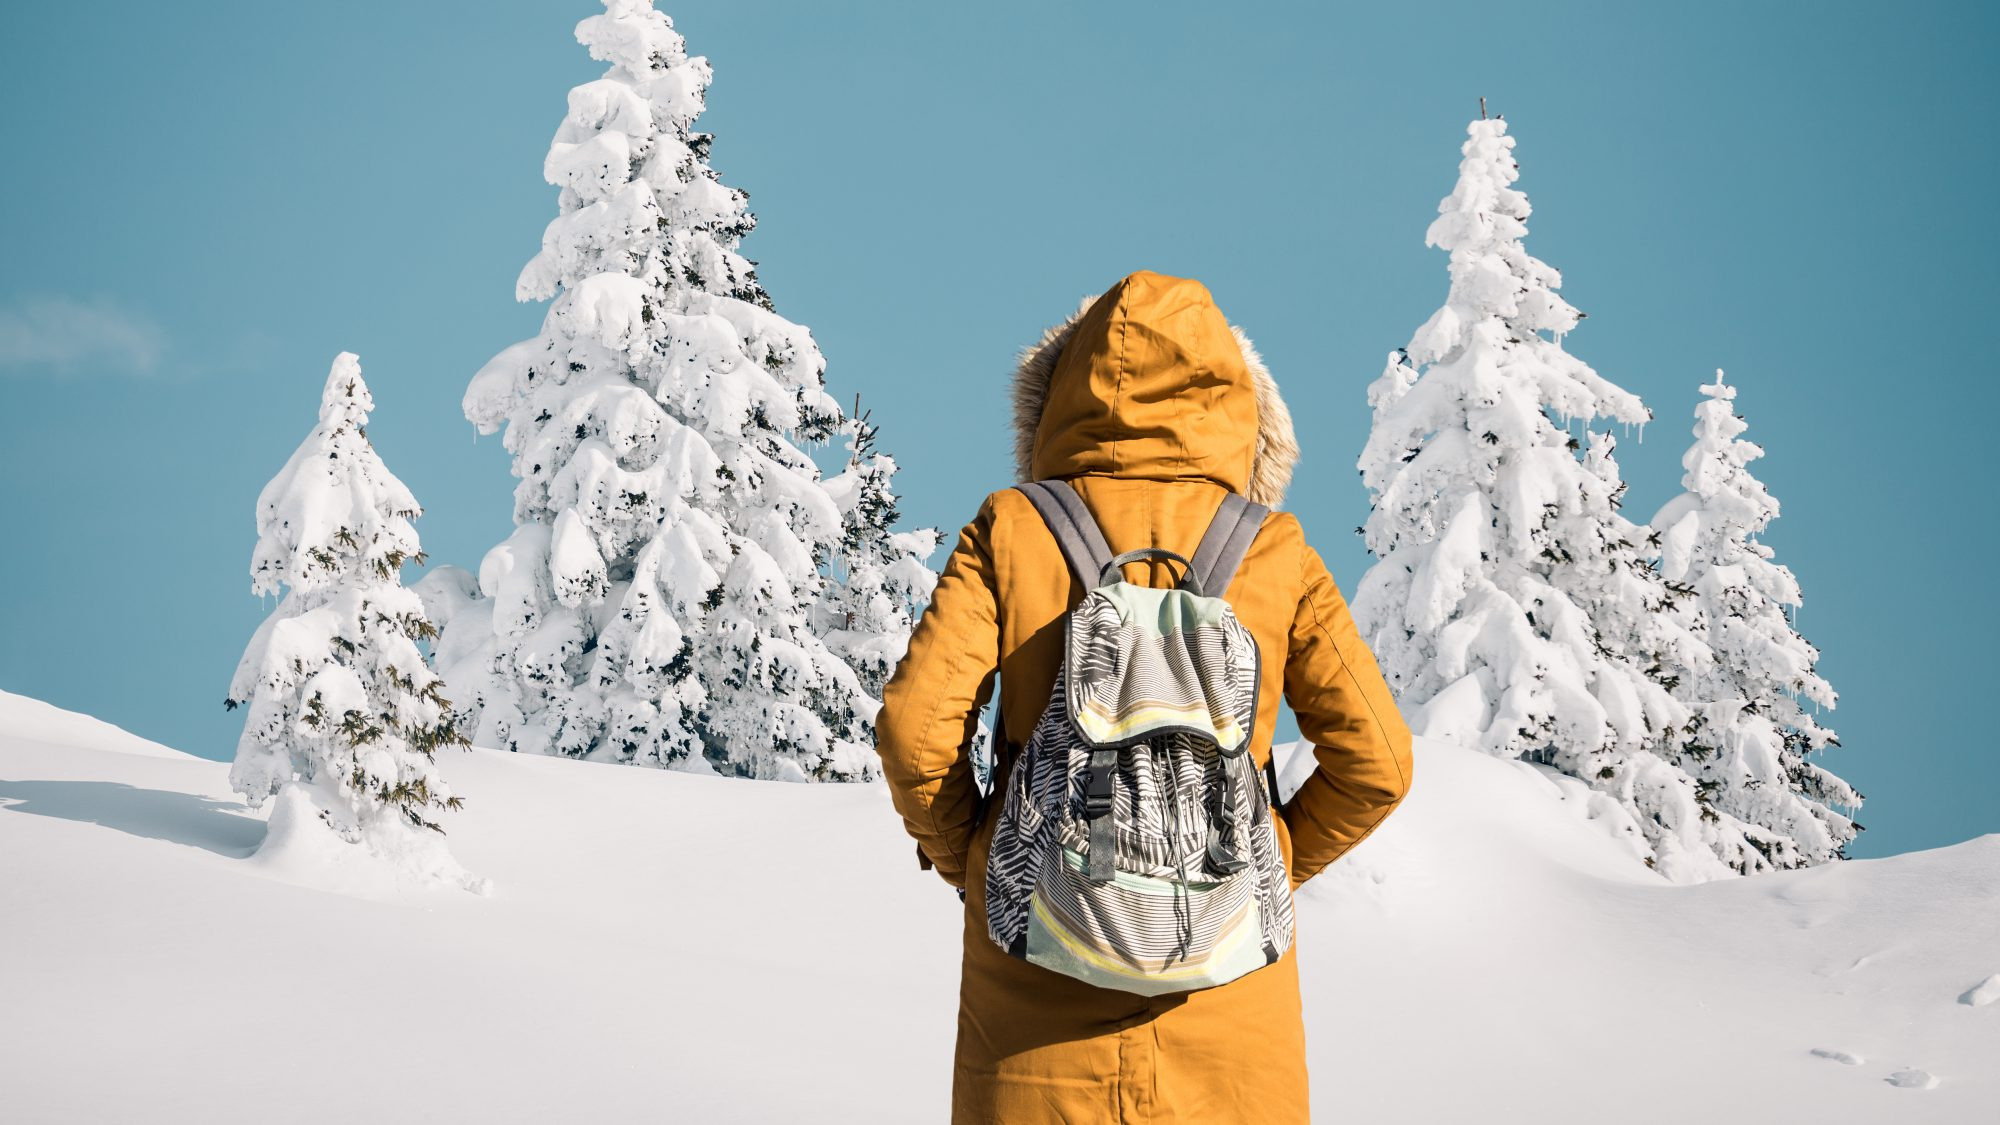 Friluftsliv outdoors trend - person outdoors in snow